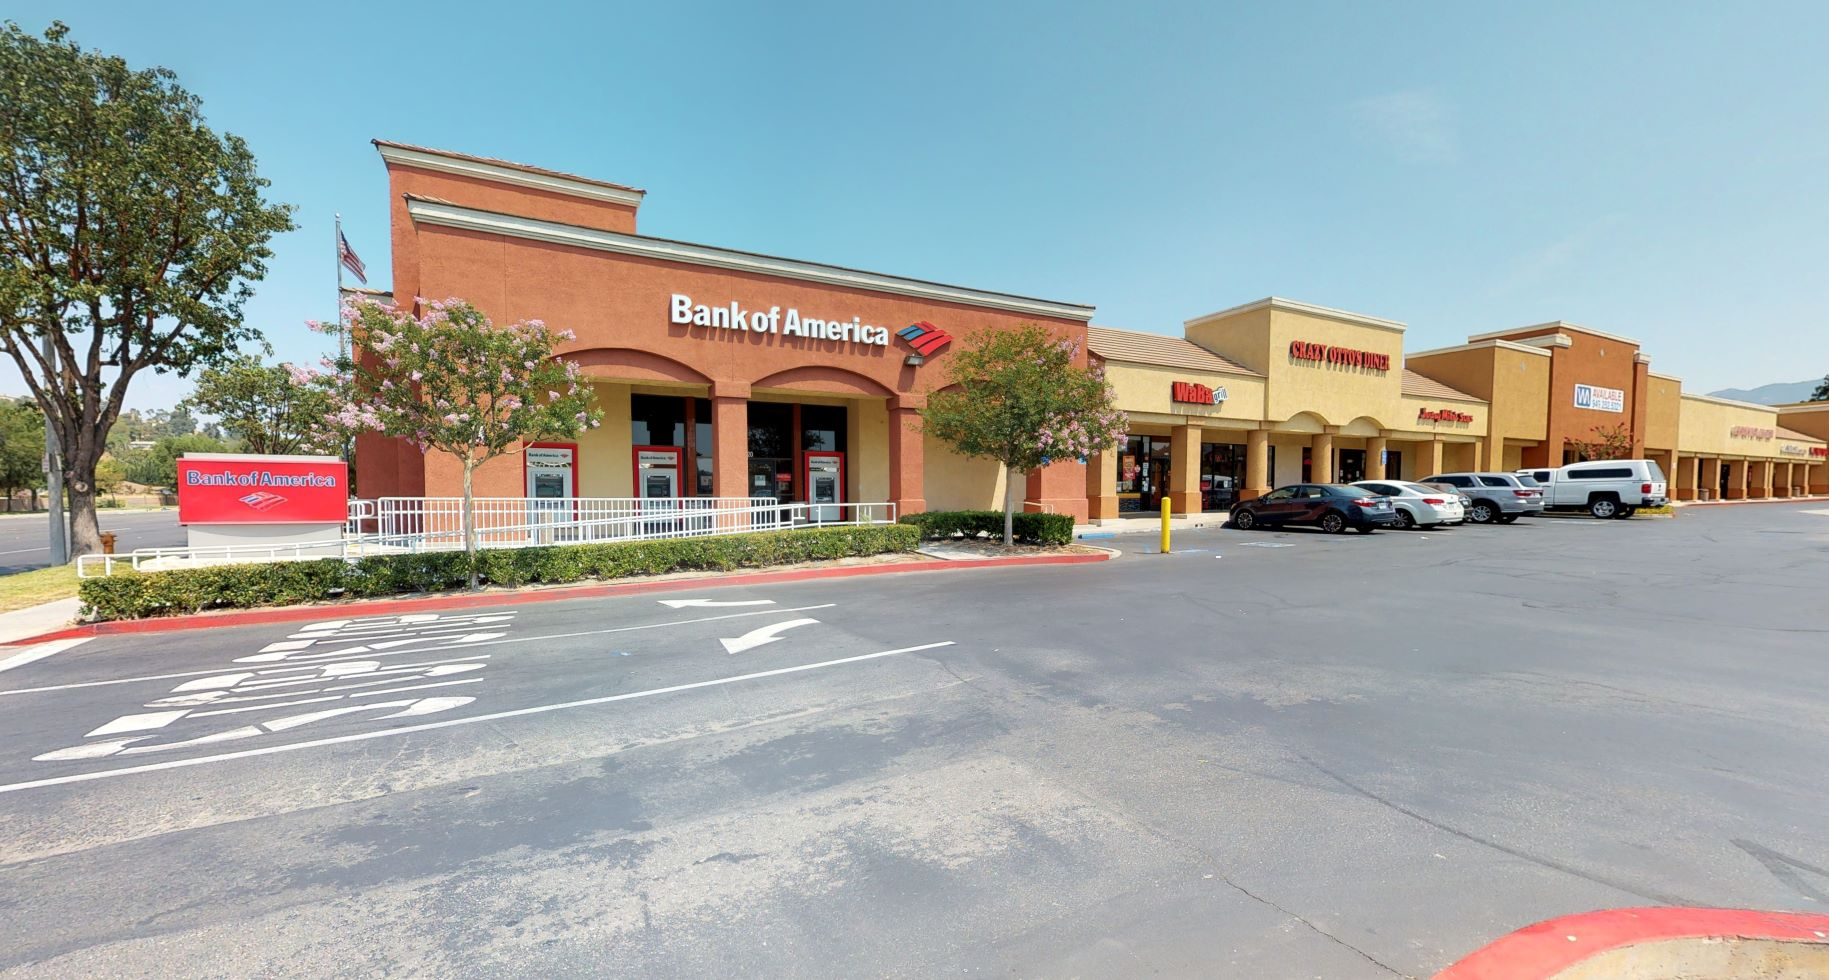 Bank of America financial center with drive-thru ATM   19120 Soledad Canyon Rd, Canyon Country, CA 91351